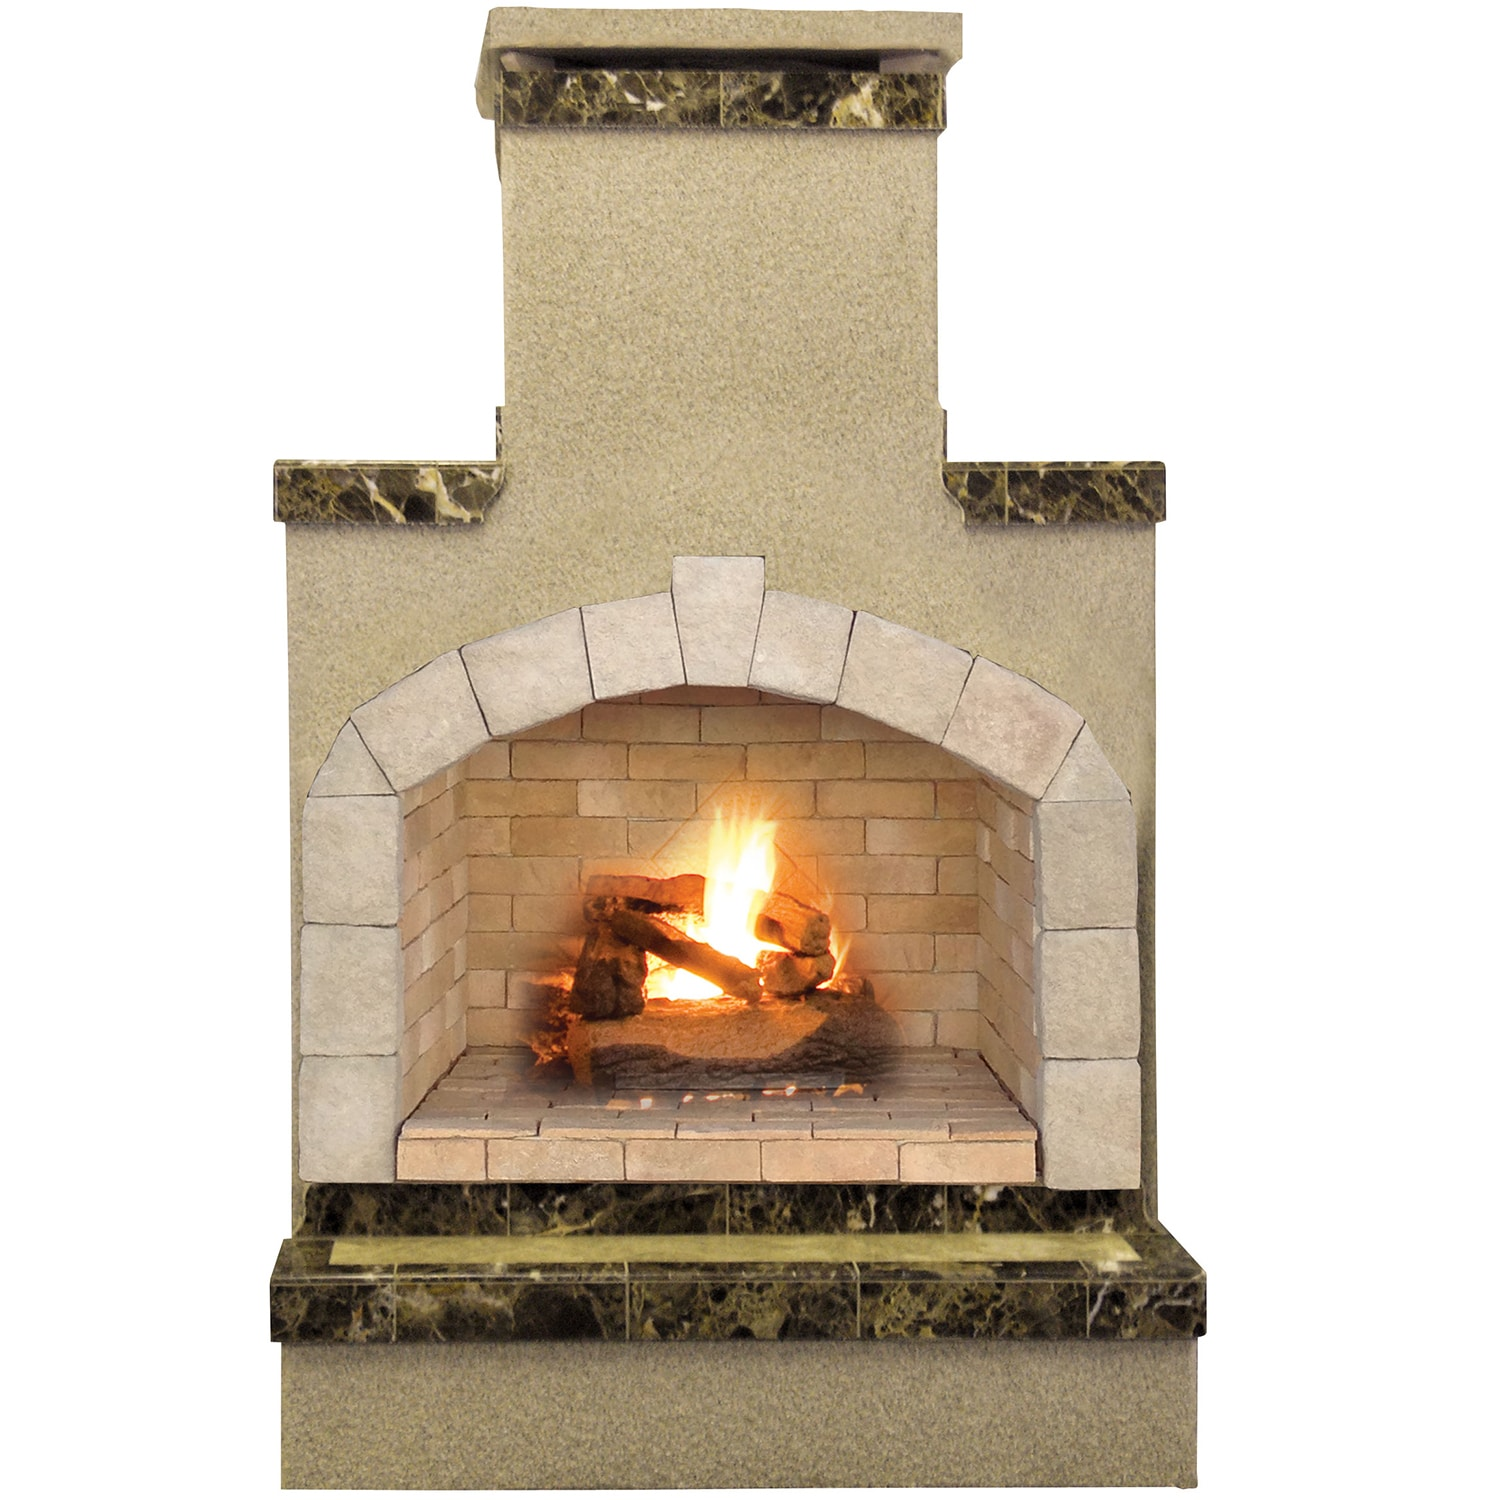 Cal Flame 48-inch Propane Gas Outdoor Fireplace with Brown Porcelain Tile by Overstock